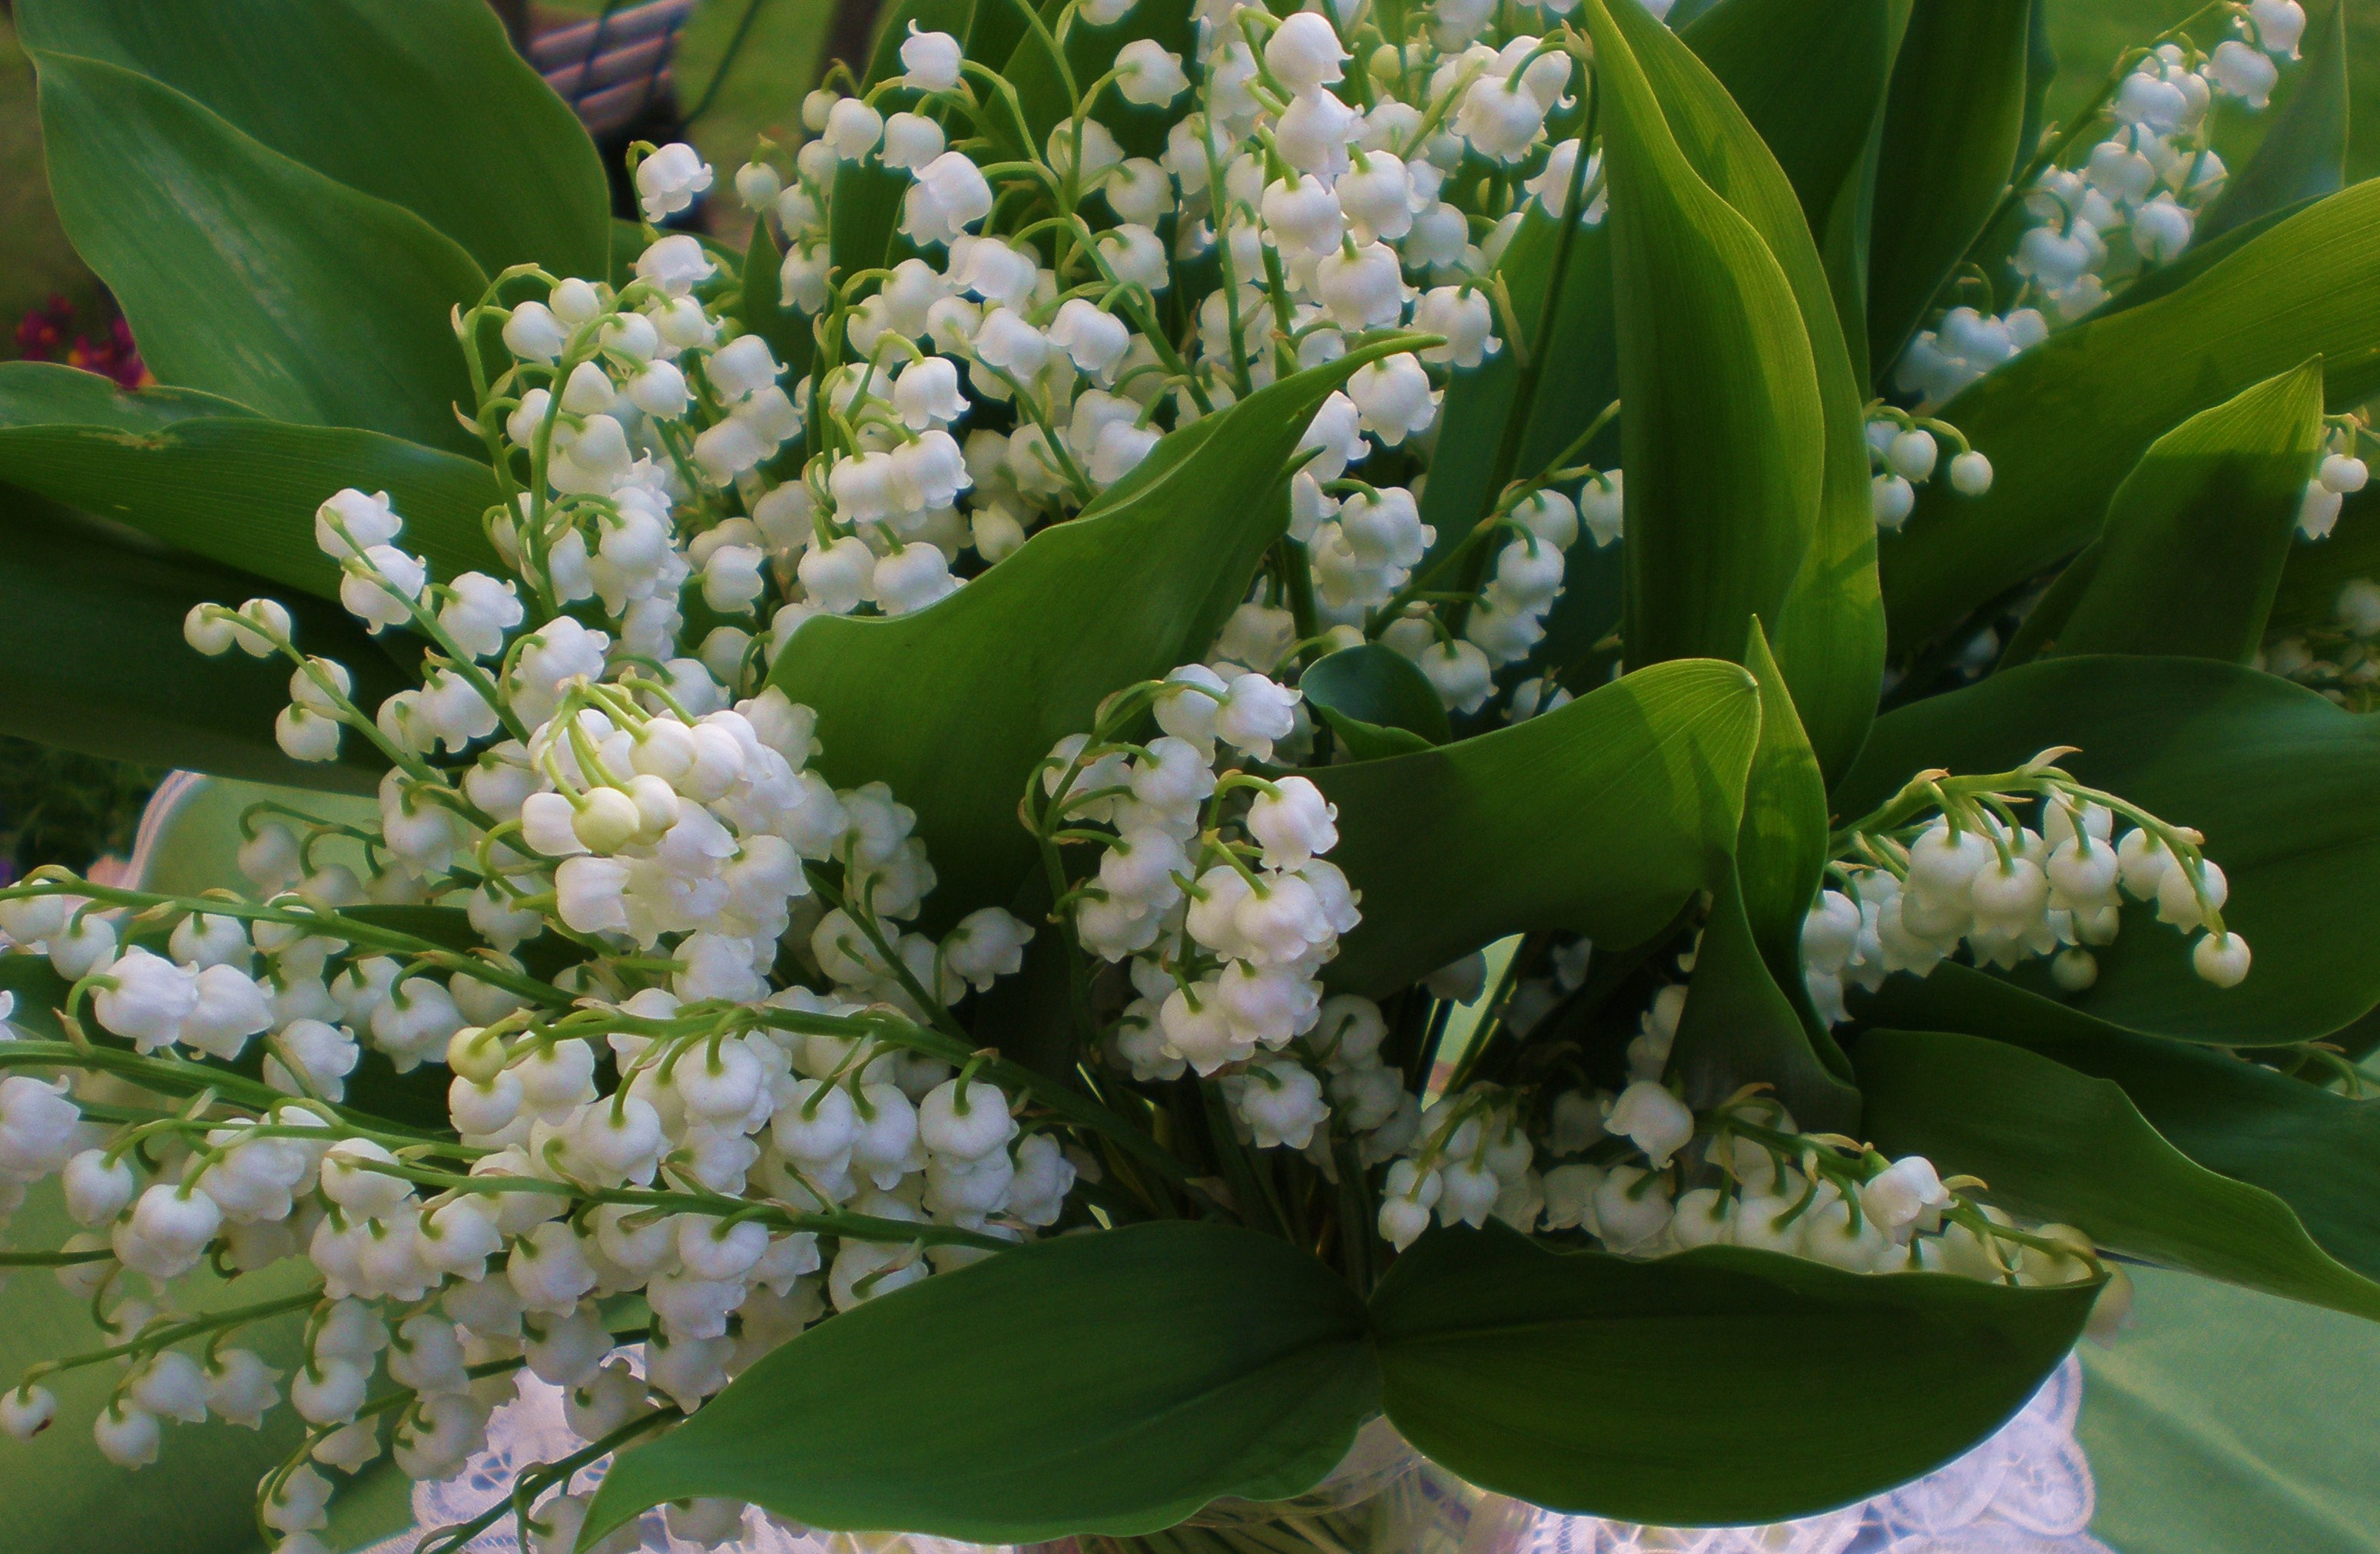 lily-of-the-valley-close.jpg?width=500